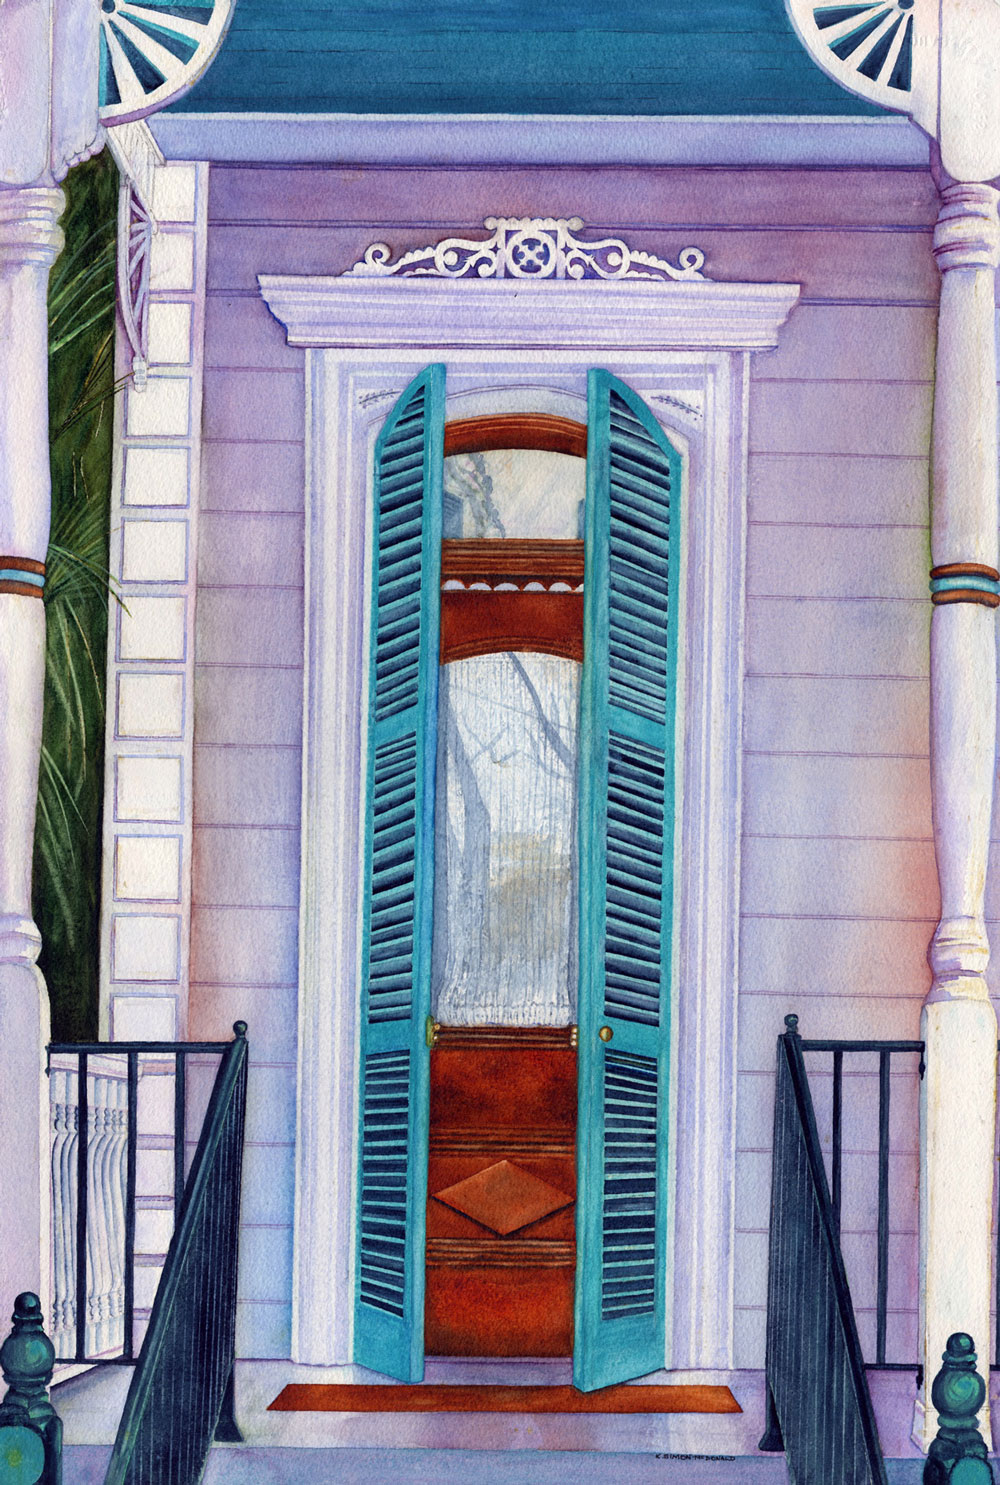 Welcome to New Orleans  by Kathy Simon-McDonald, $750